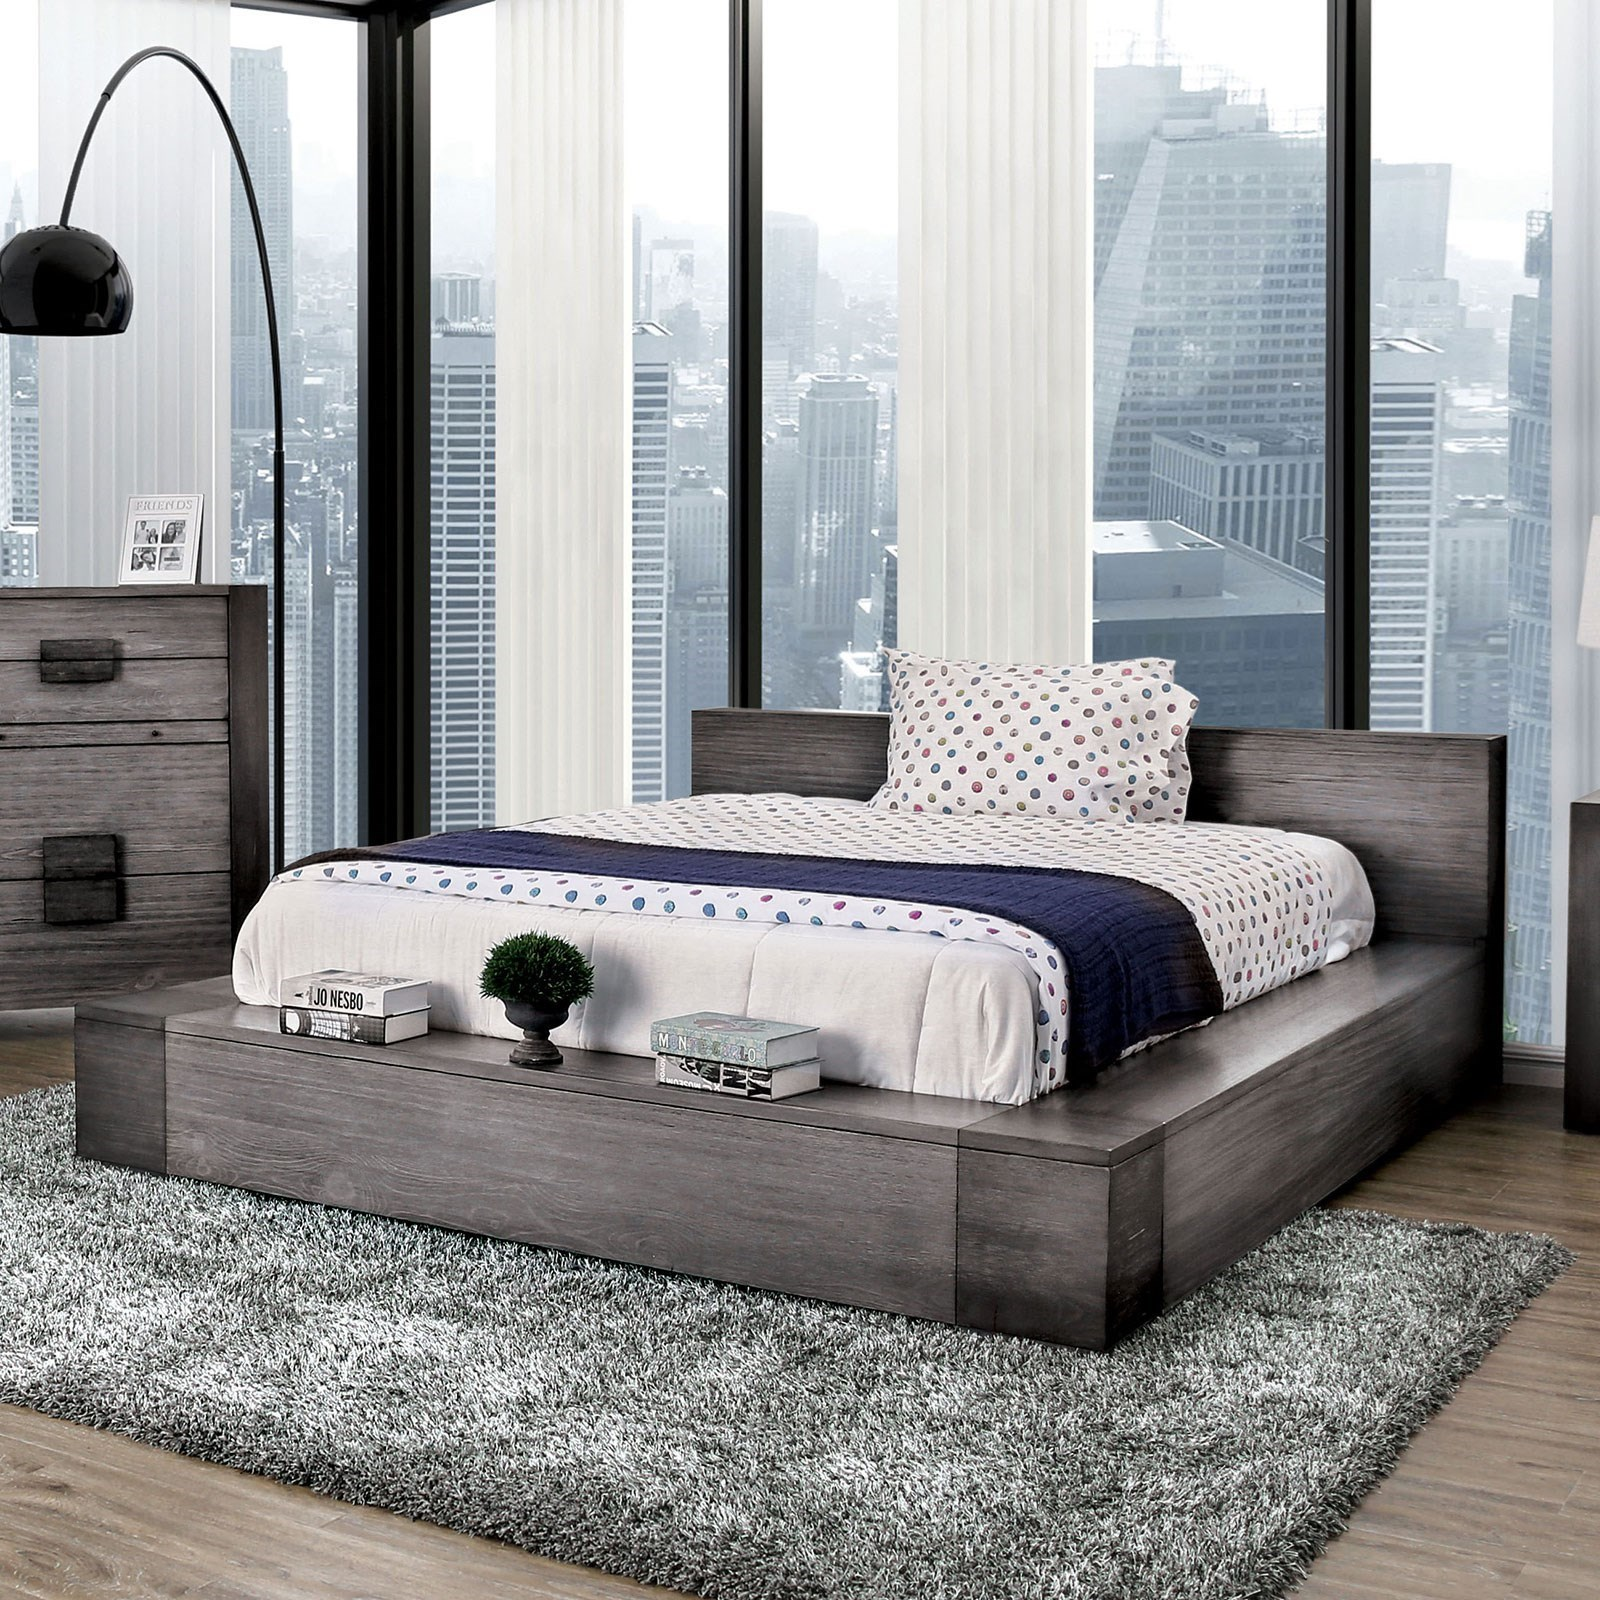 Janeiro King Bed at Household Furniture